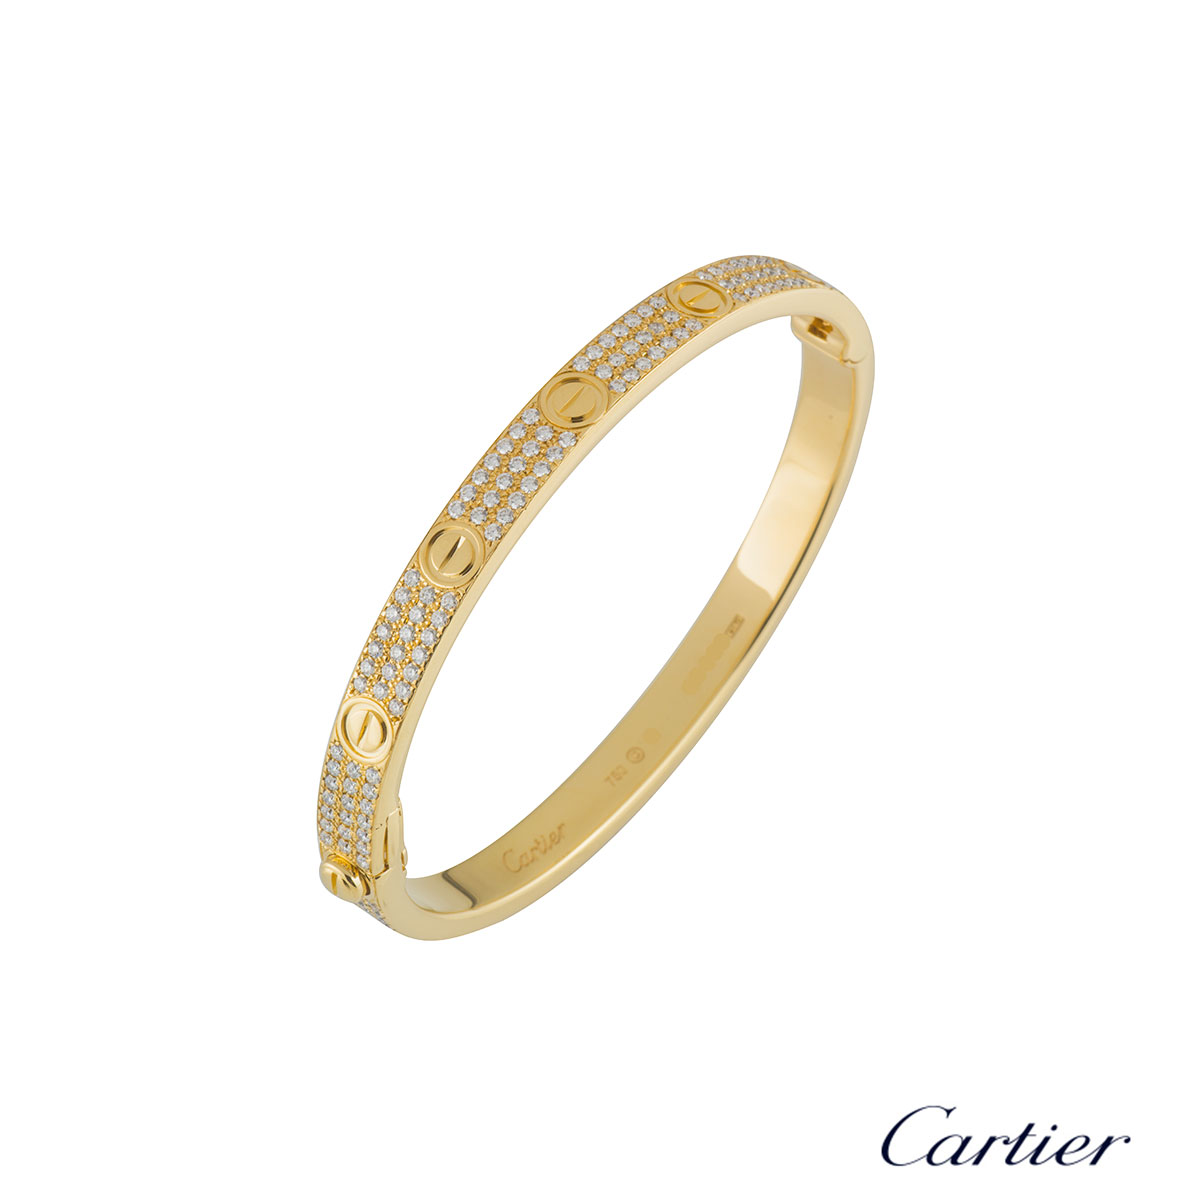 Cartier Yellow Gold Pave Diamond Love Bracelet Size 18 N6035018